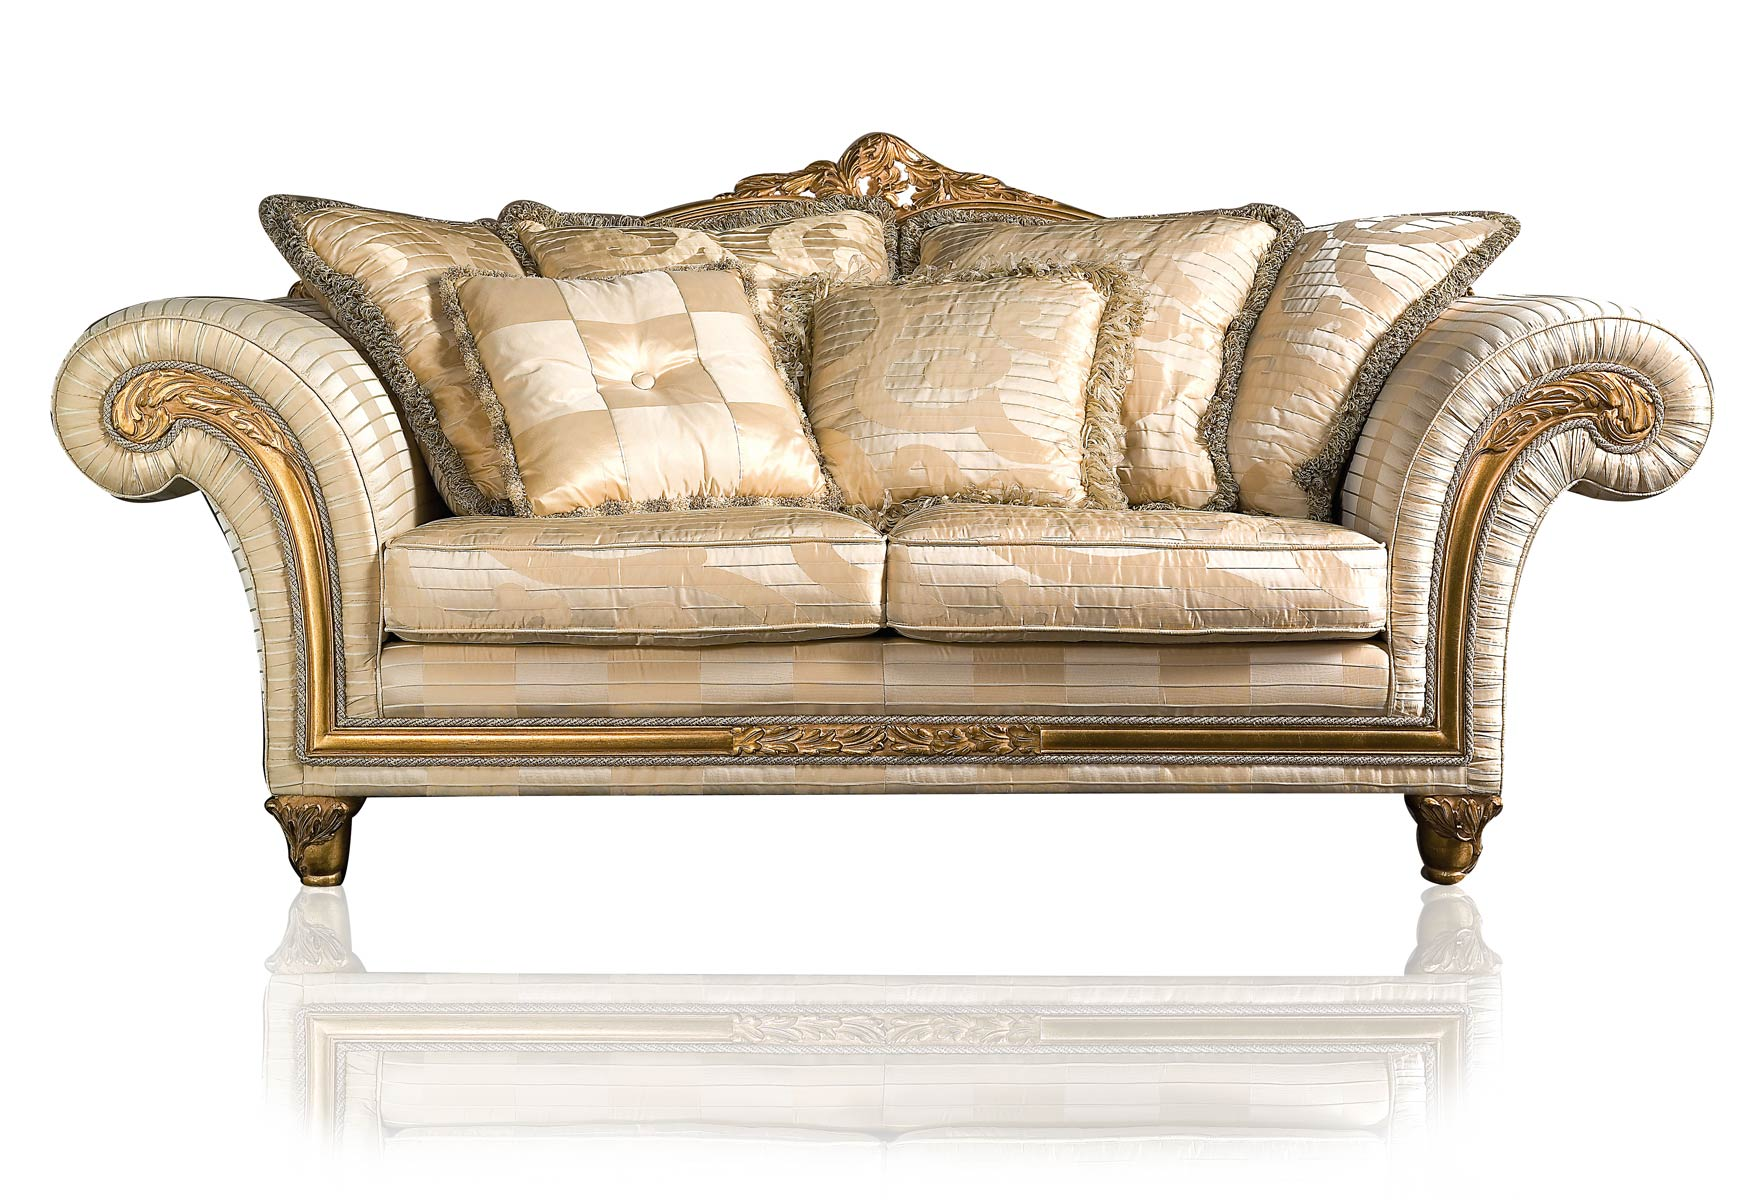 luxury classic sofa and armchairs imperial by vimercati